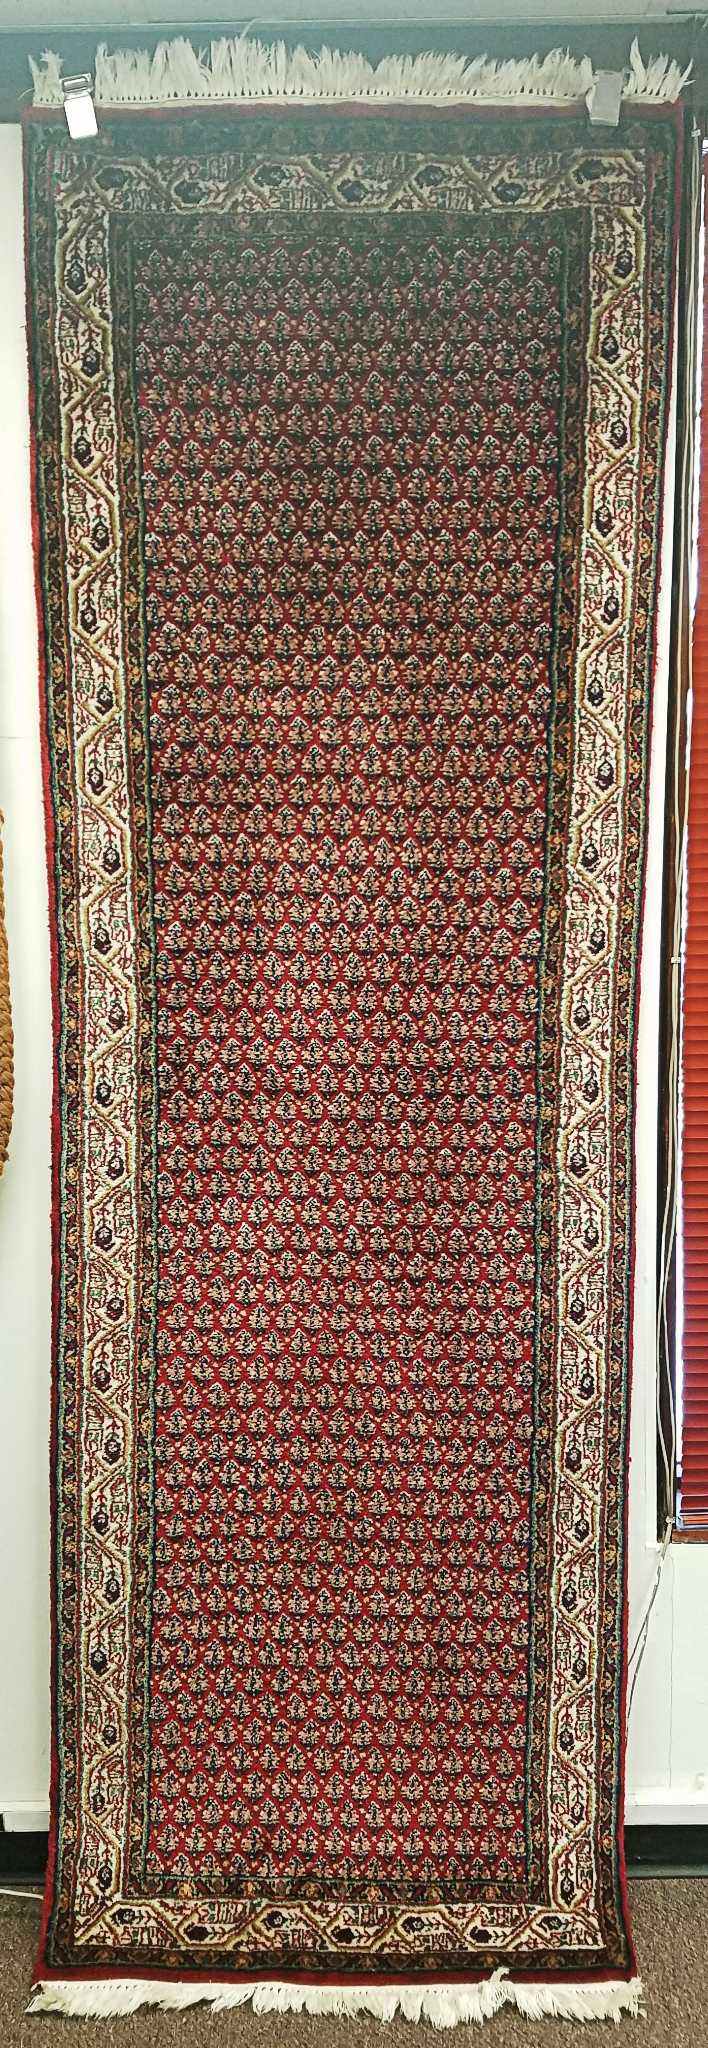 India Serabend Oriental Rug for Sale